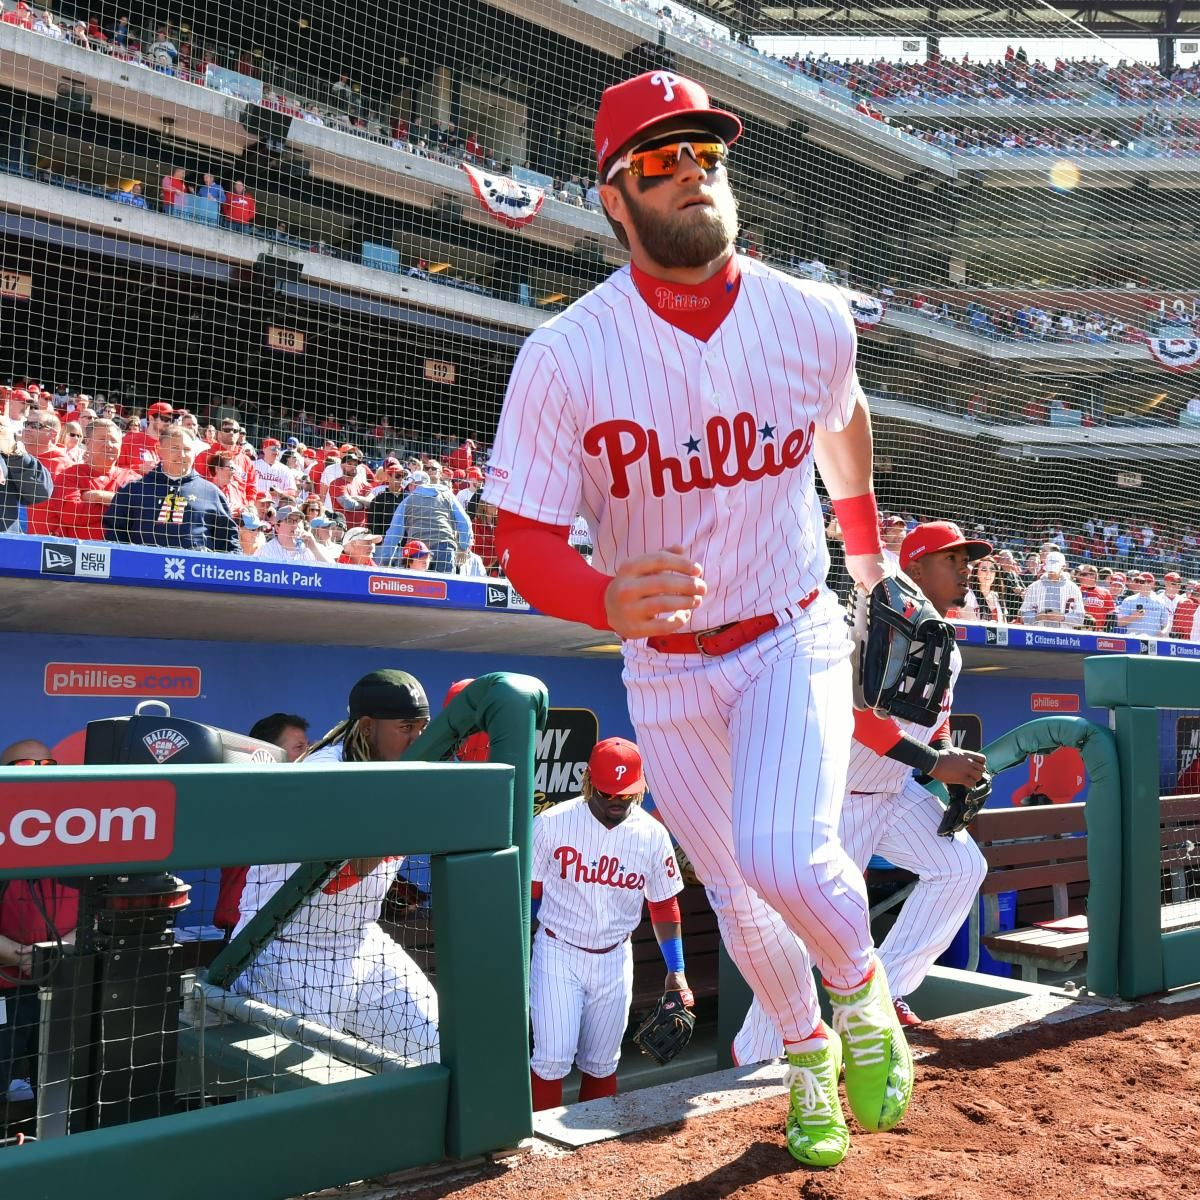 Bryce Harper S Stats Video Highlights From Phillies Debut After 330m Contract In 2020 Bryce Harper Phillies Atlanta Braves